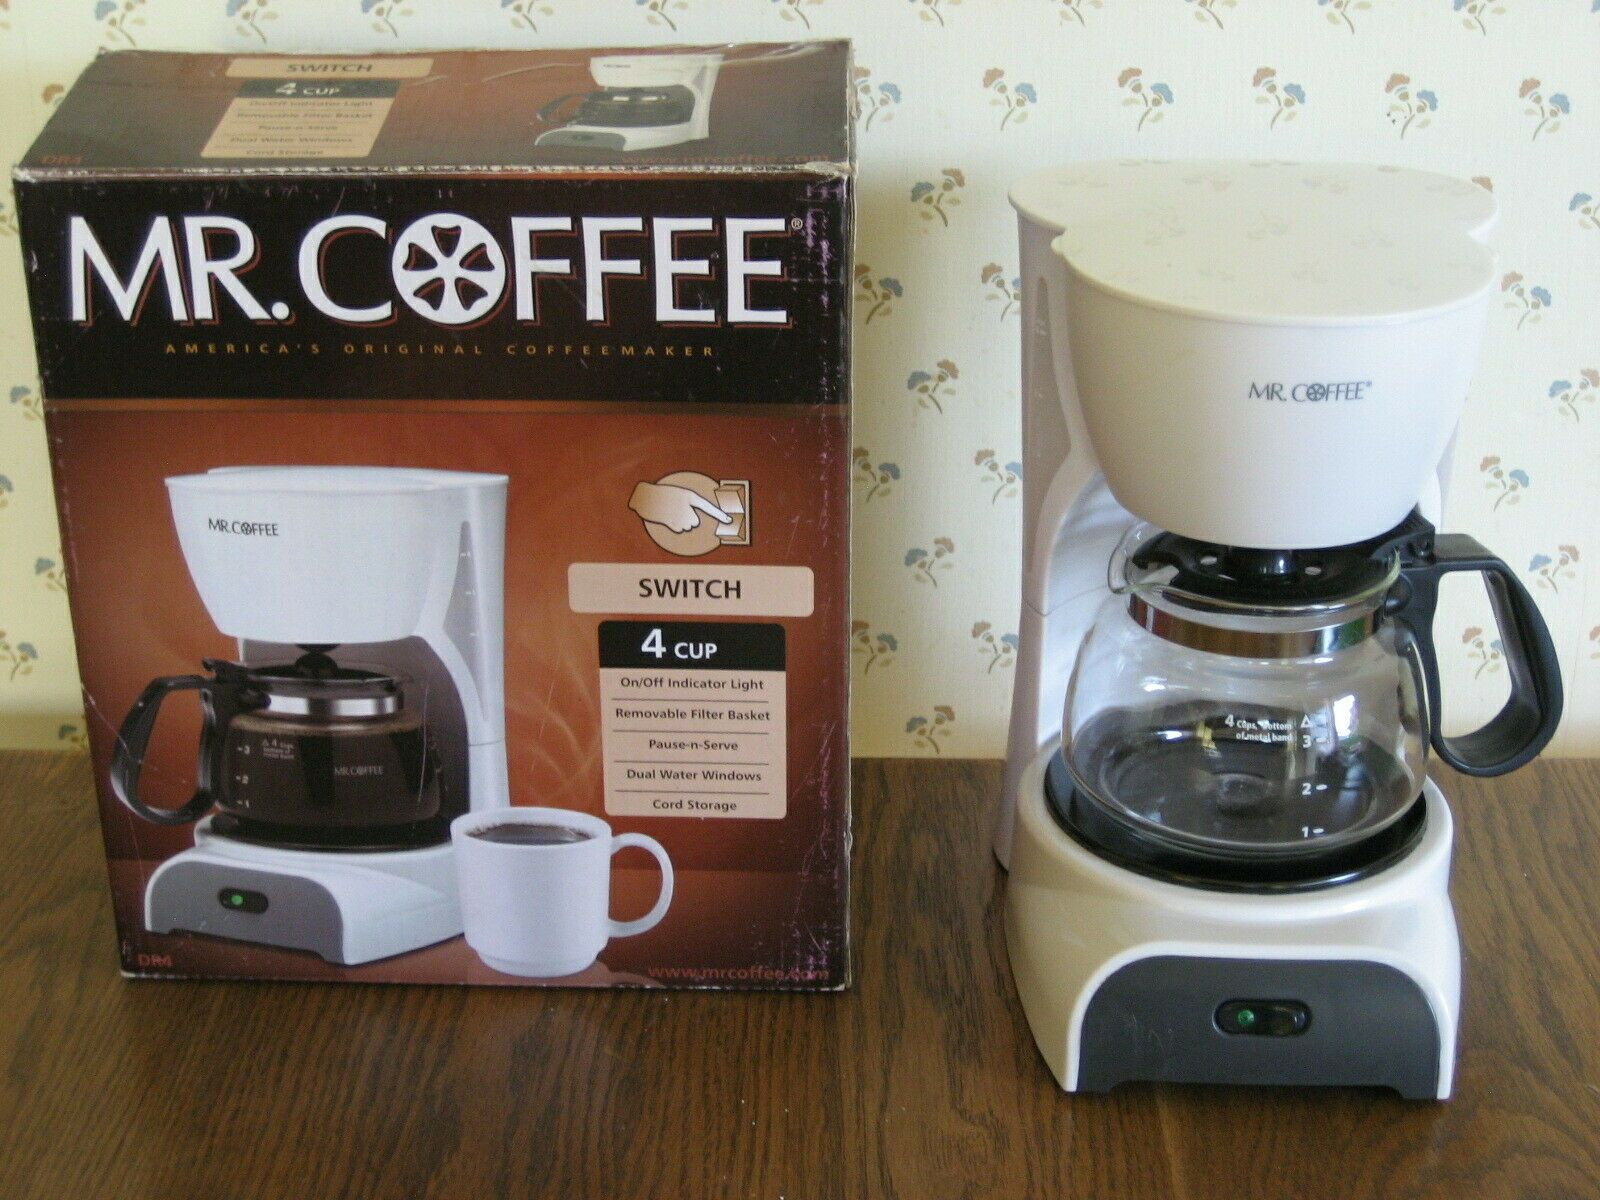 Mr Coffee Dr4 4 Cup Coffee Maker White Ebay In 2020 4 Cup Coffee Maker Bunn Coffee Maker Single Cup Coffee Maker